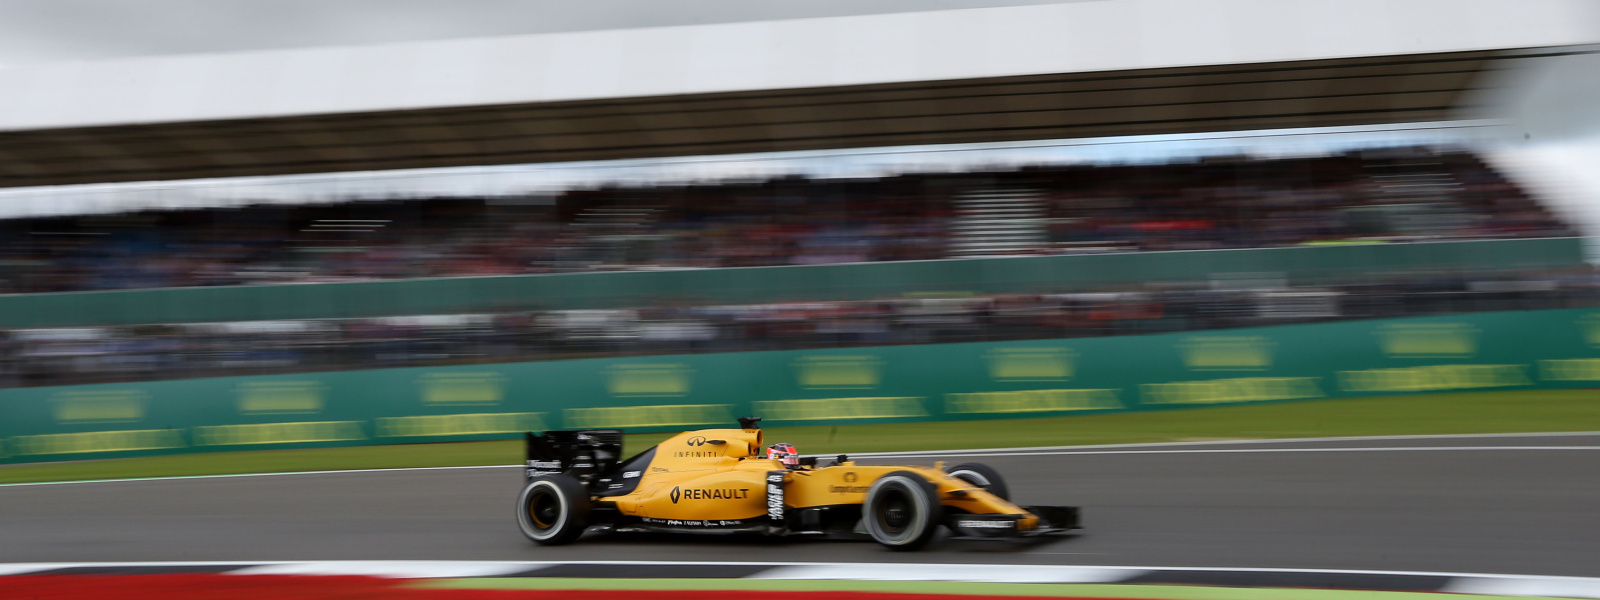 Motorsports: FIA Formula One World Championship 2016, Grand Prix of Great Britain,  #45 Esteban Ocon (FRA, Renault Sport Formula 1 Team),  *** Local Caption *** +++ www.hoch-zwei.net +++ copyright: HOCH ZWEI +++